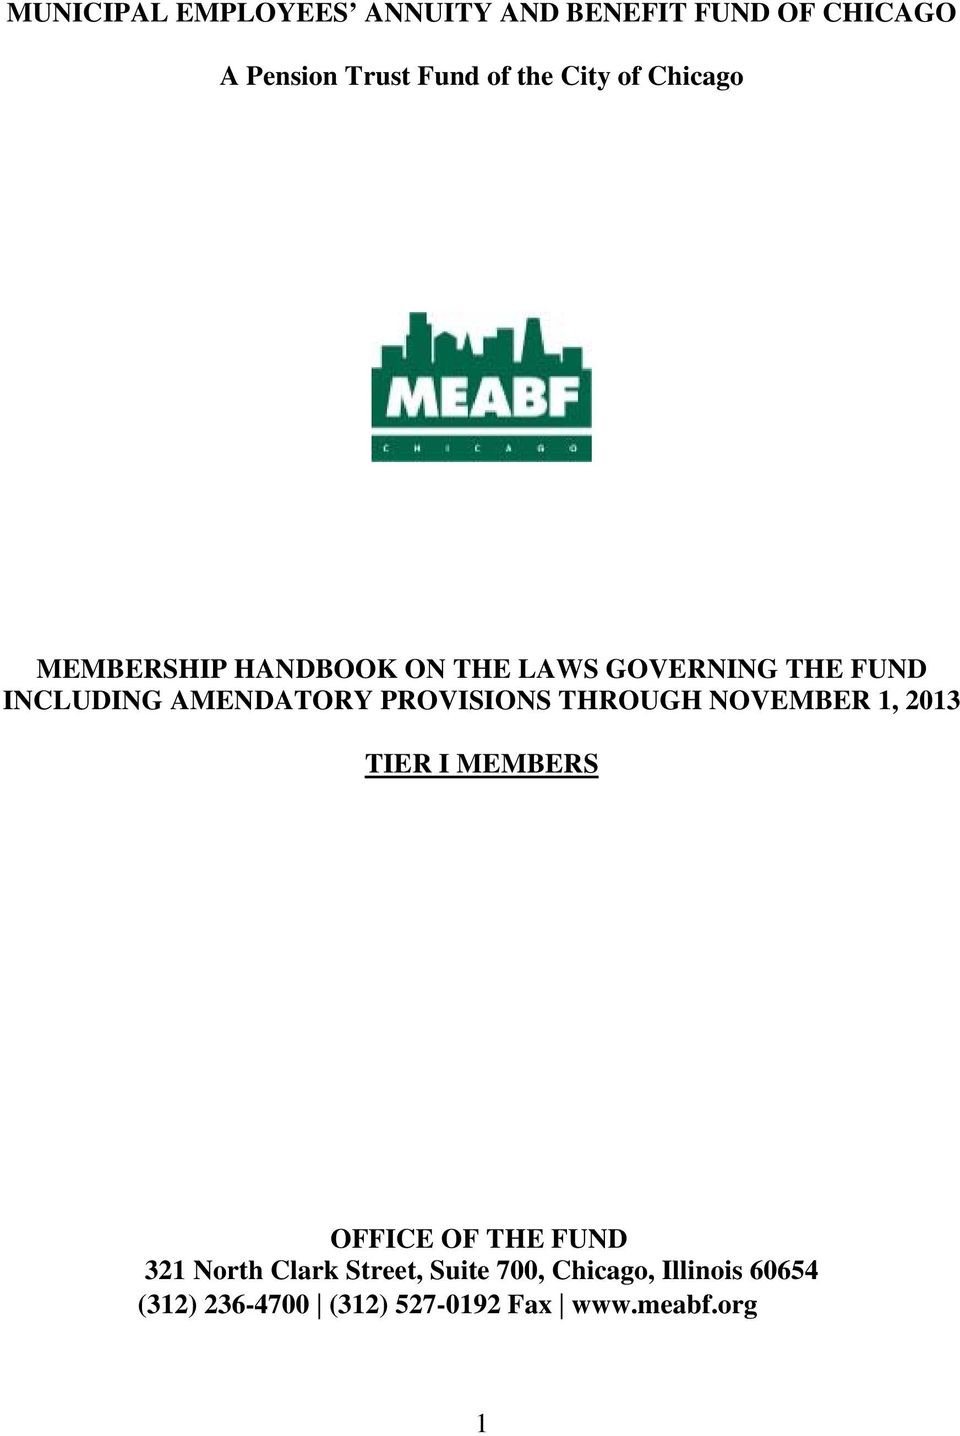 PROVISIONS THROUGH NOVEMBER 1, 2013 TIER I MEMBERS OFFICE OF THE FUND 321 North Clark